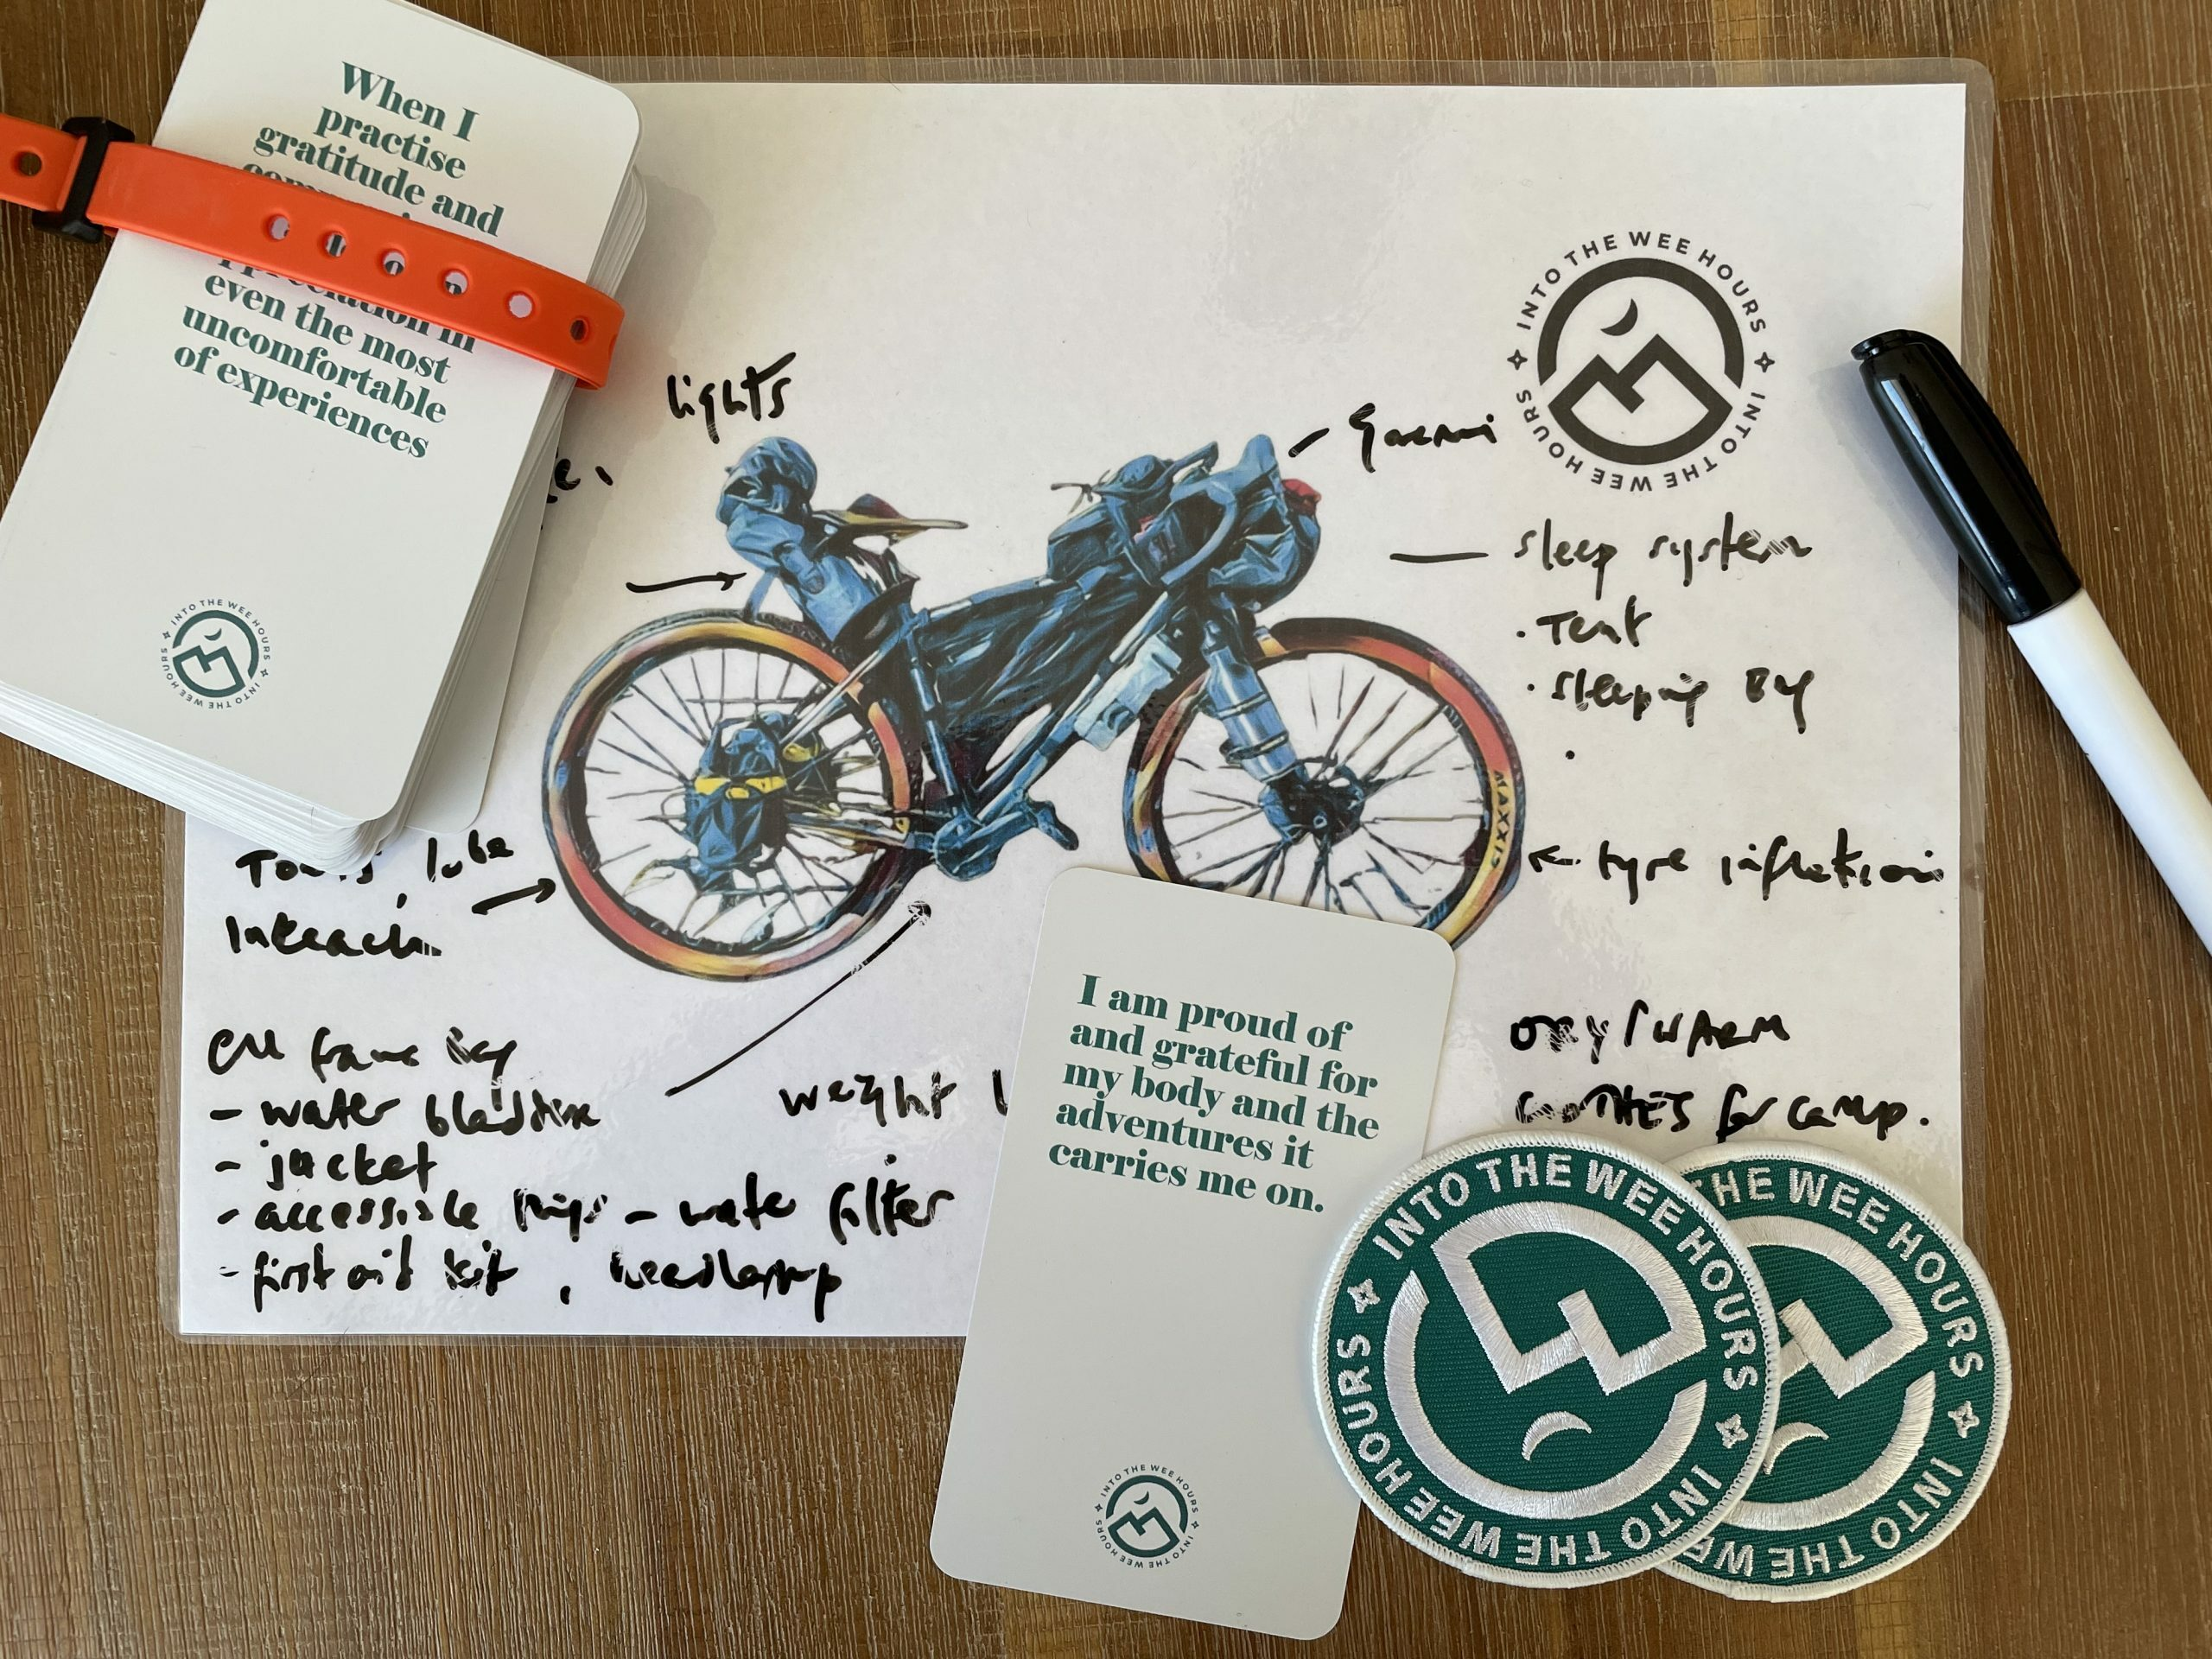 Affirmation cards at the women's intro to bikepacking workshop